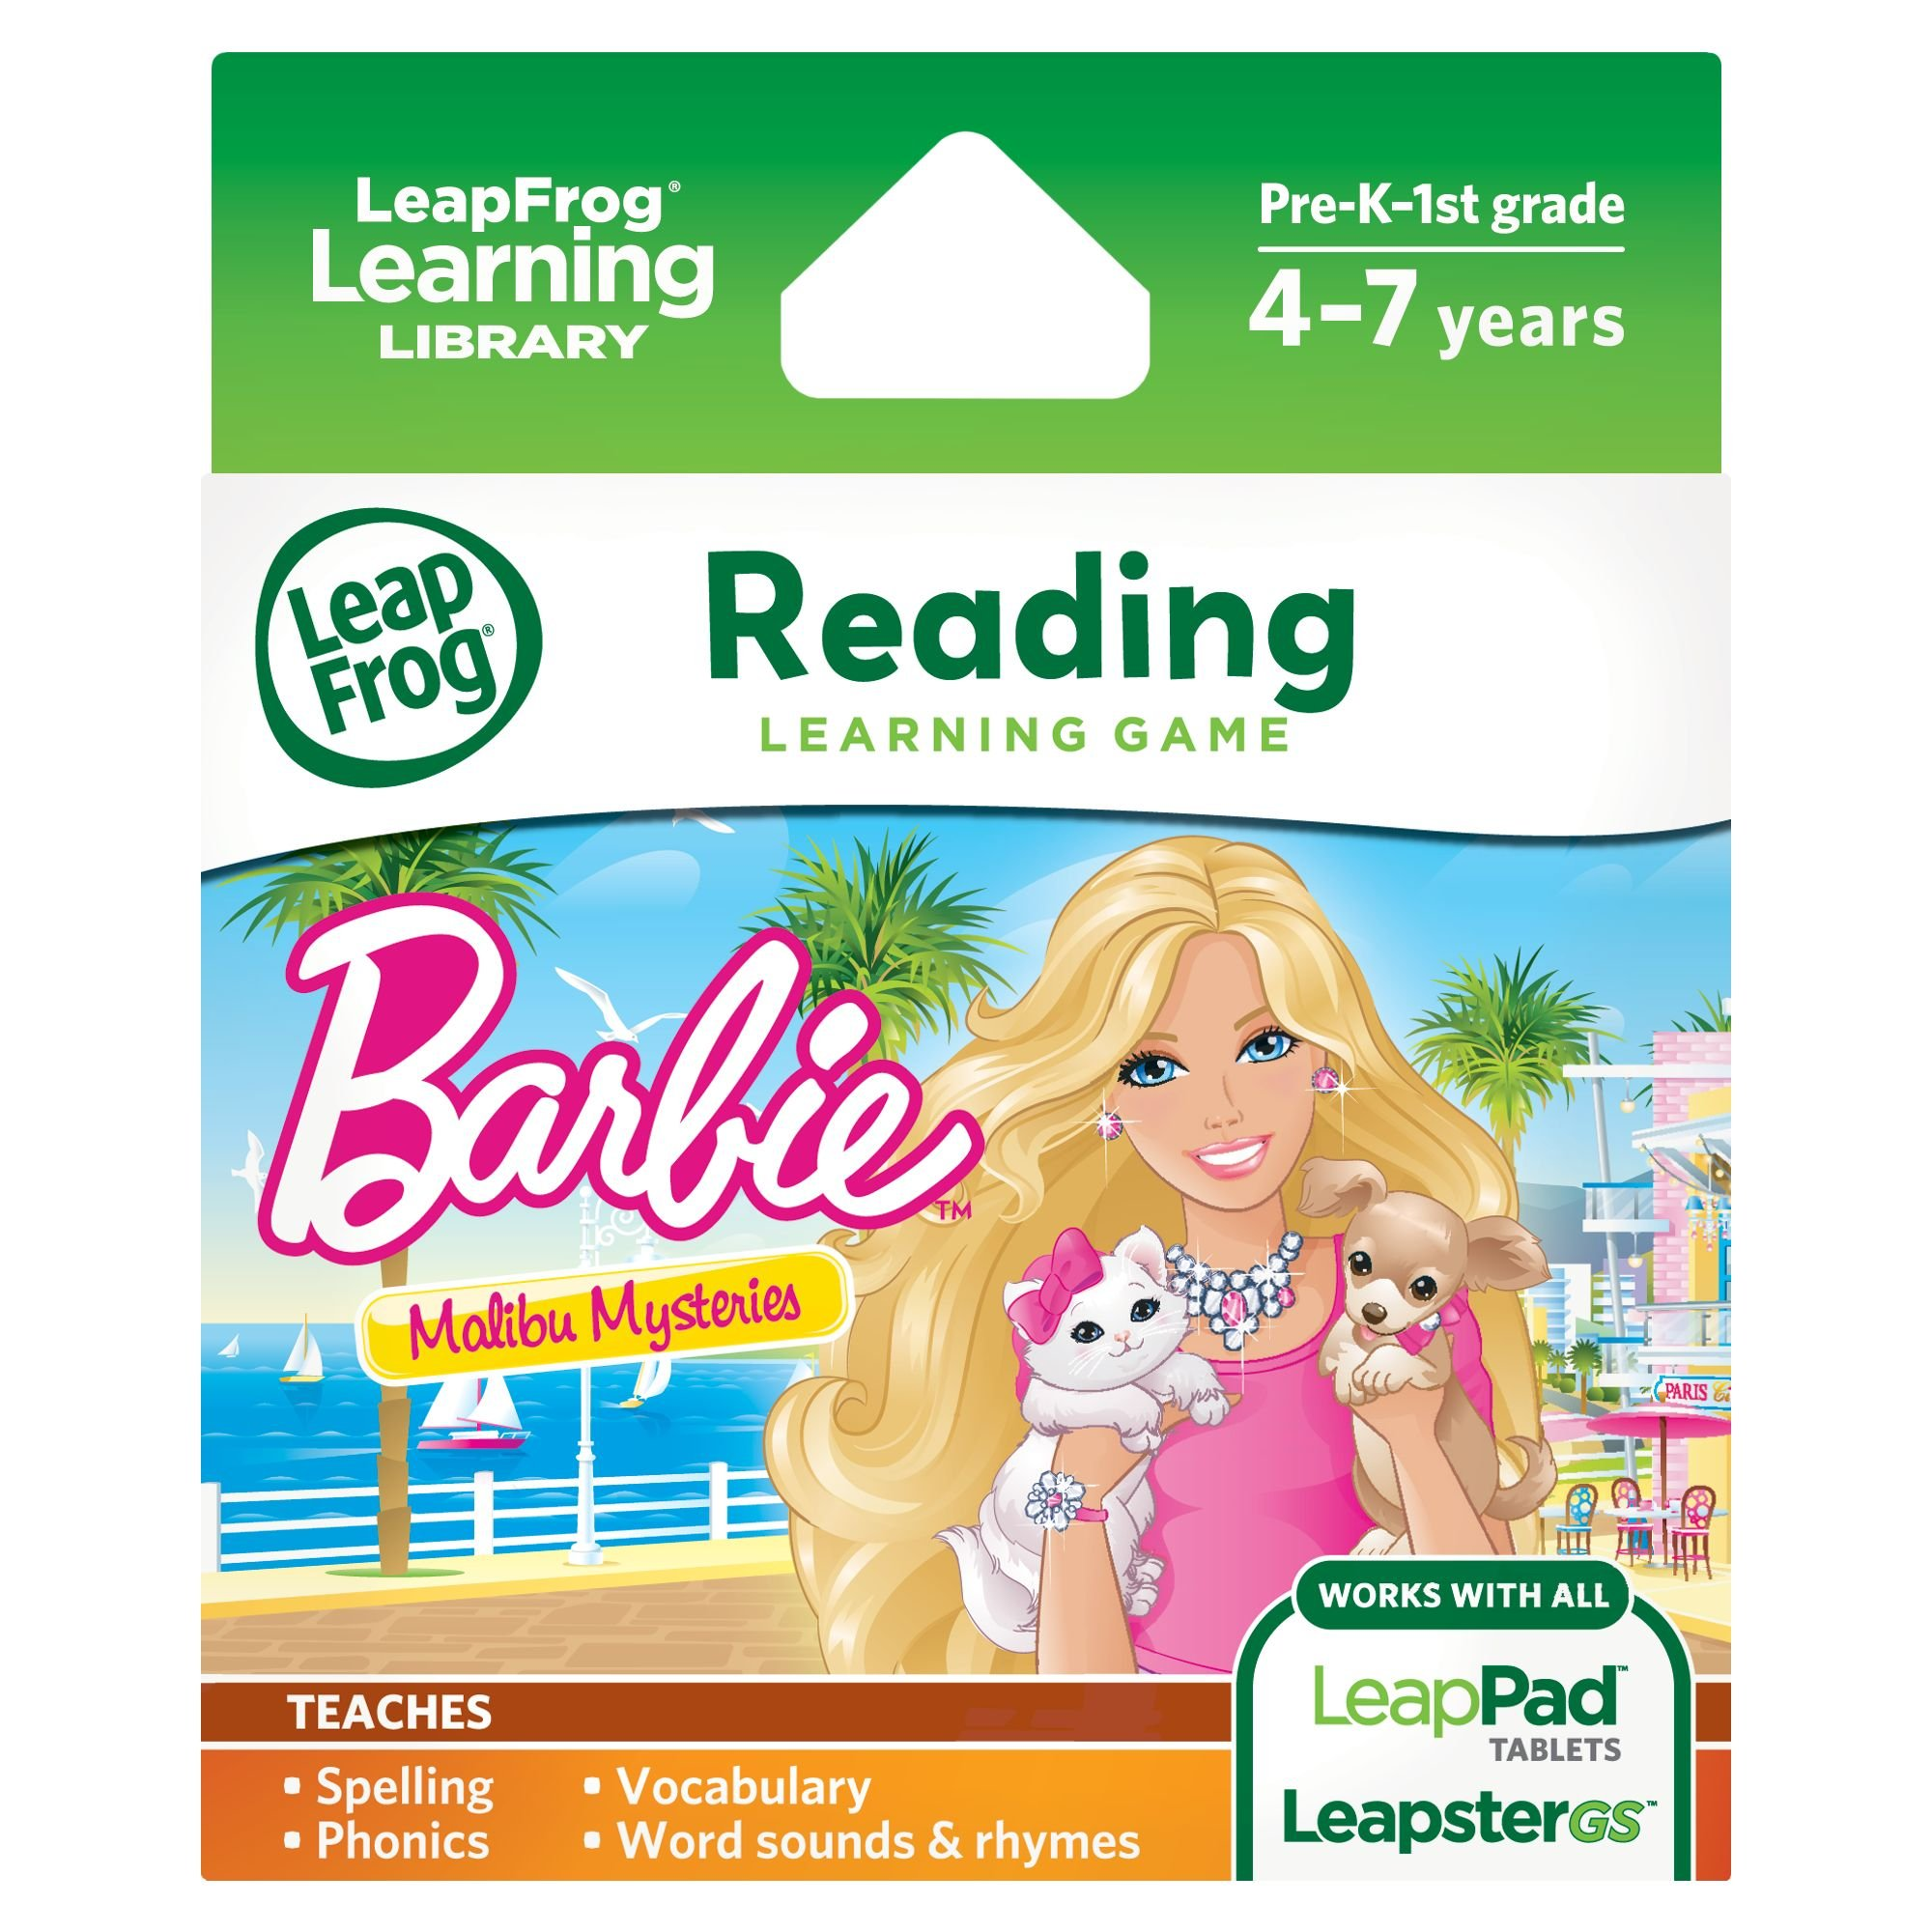 LeapFrog Learning Game: Barbie Malibu Mysteries (for LeapPad Tablets and LeapsterGS) by LeapFrog